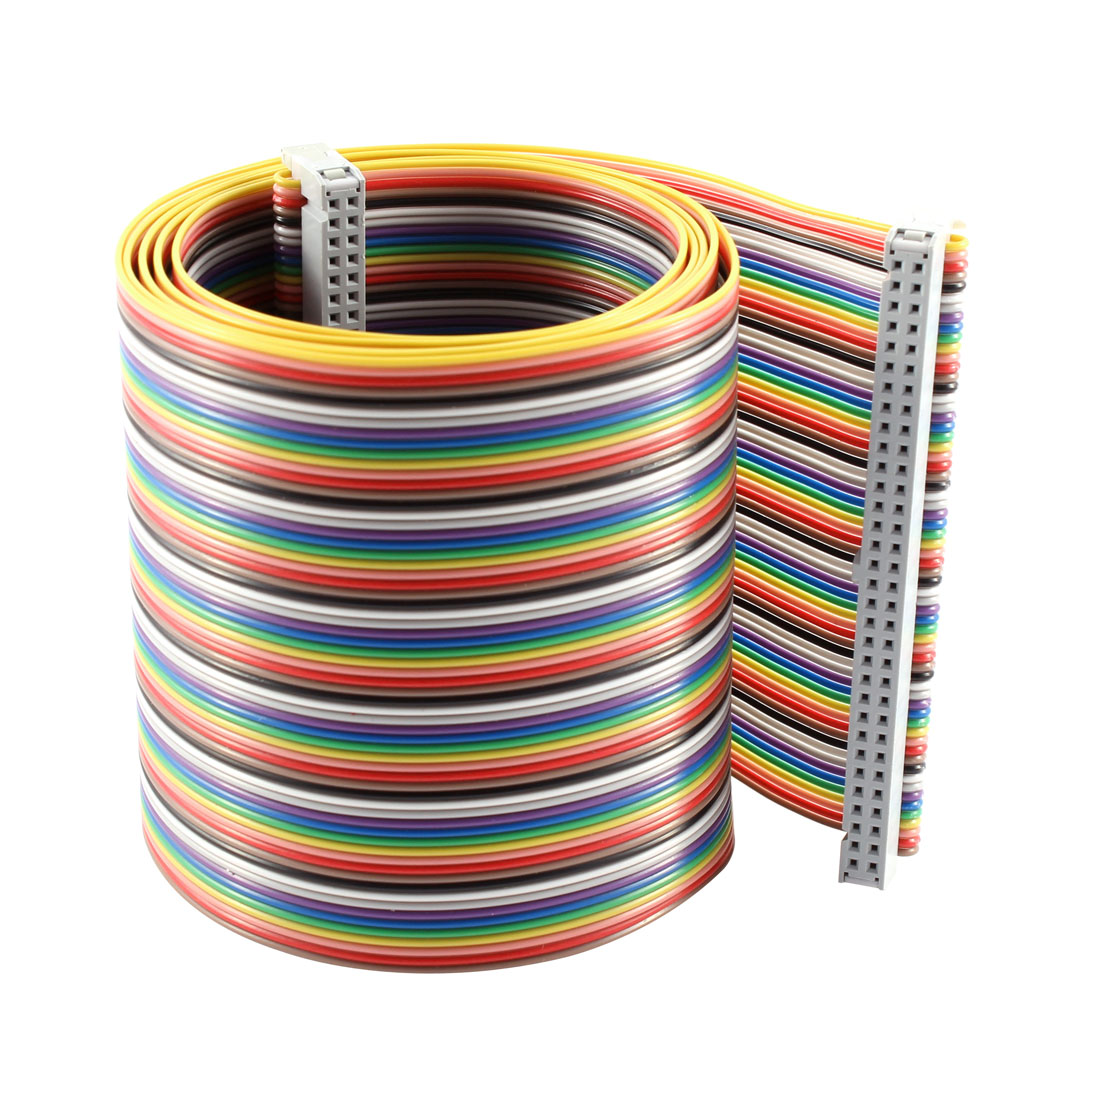 2.54mm Pitch 64 Pin 64 Way F/F Connector IDC Flat Rainbow Ribbon Cable 118cm